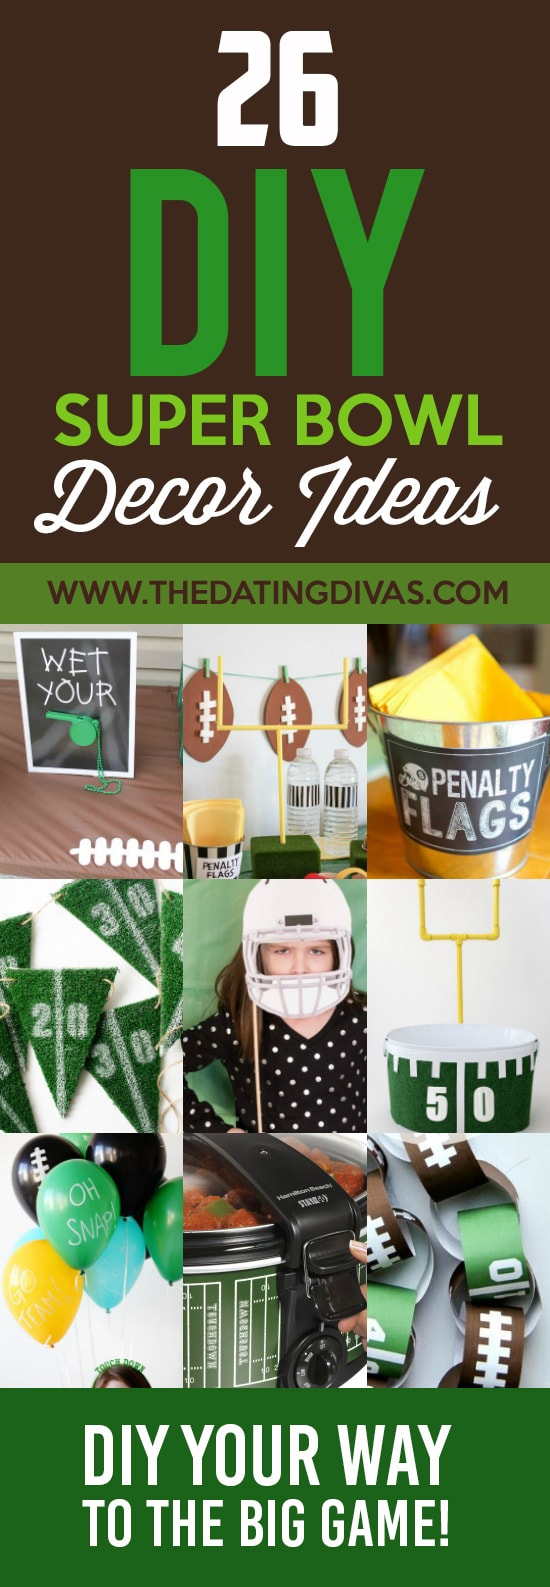 Decorate for the Super Bowl.